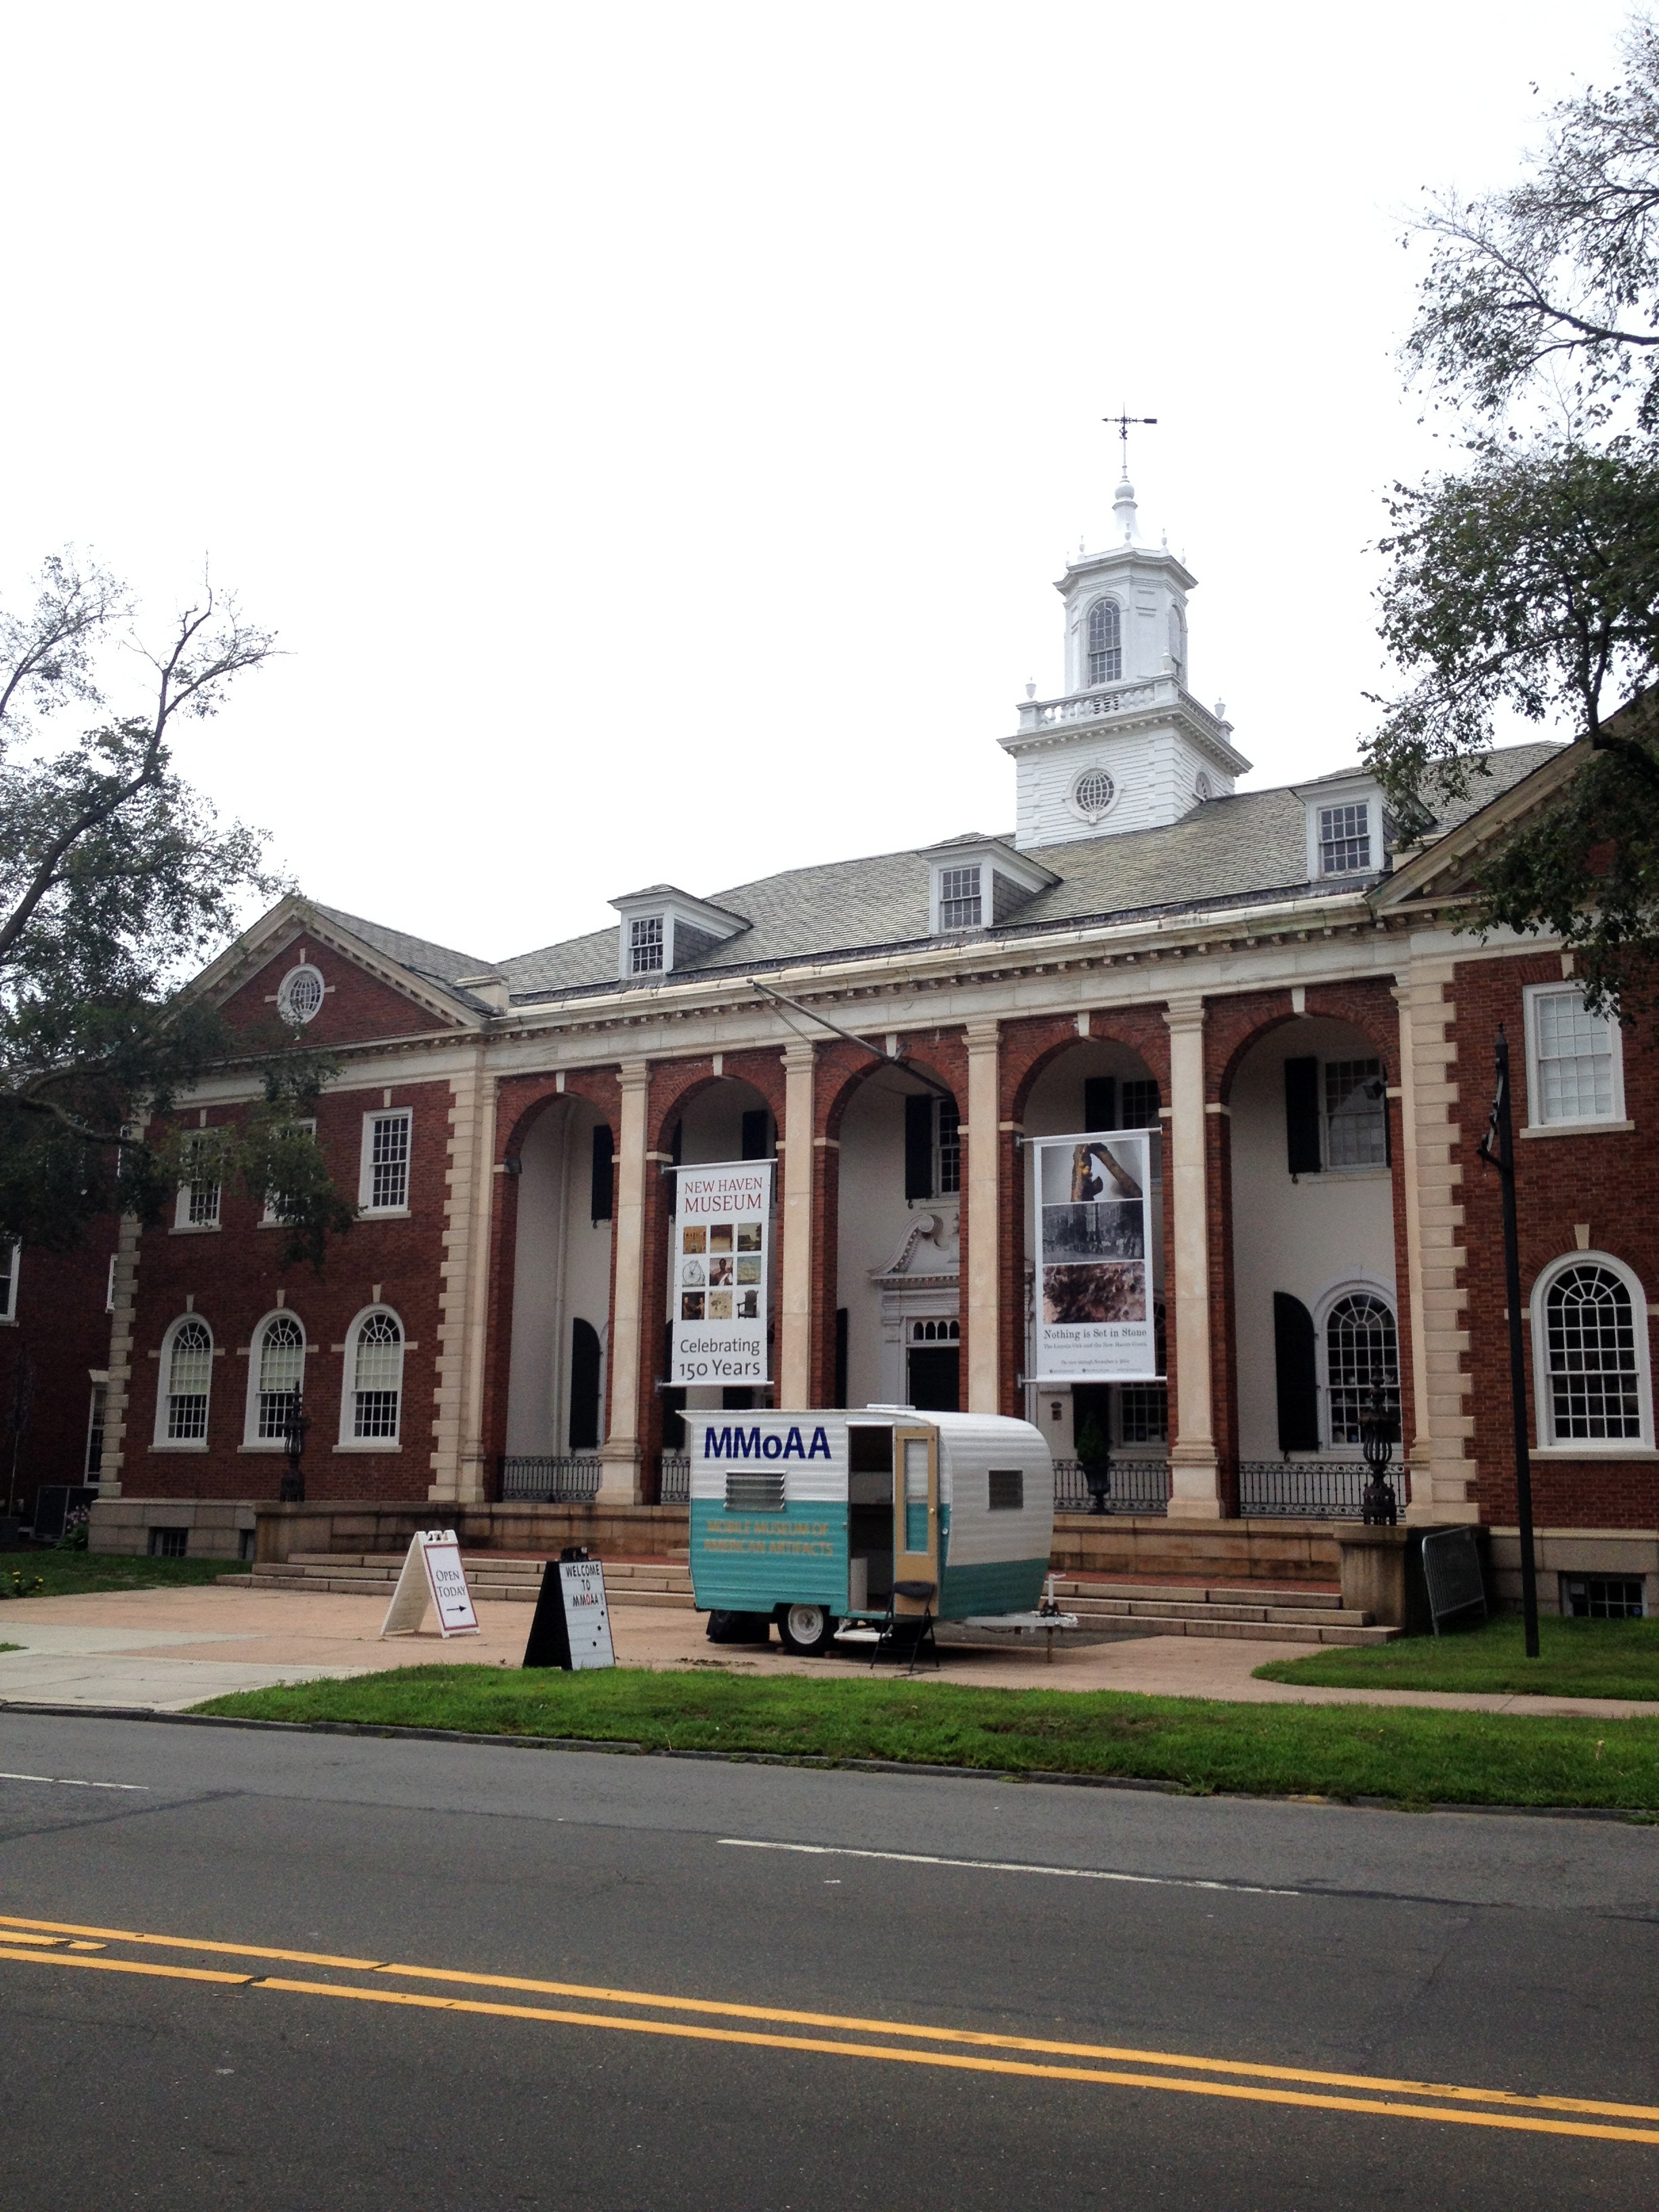 MMoAA lands in front of the New Haven Museum on July 16, 2014.